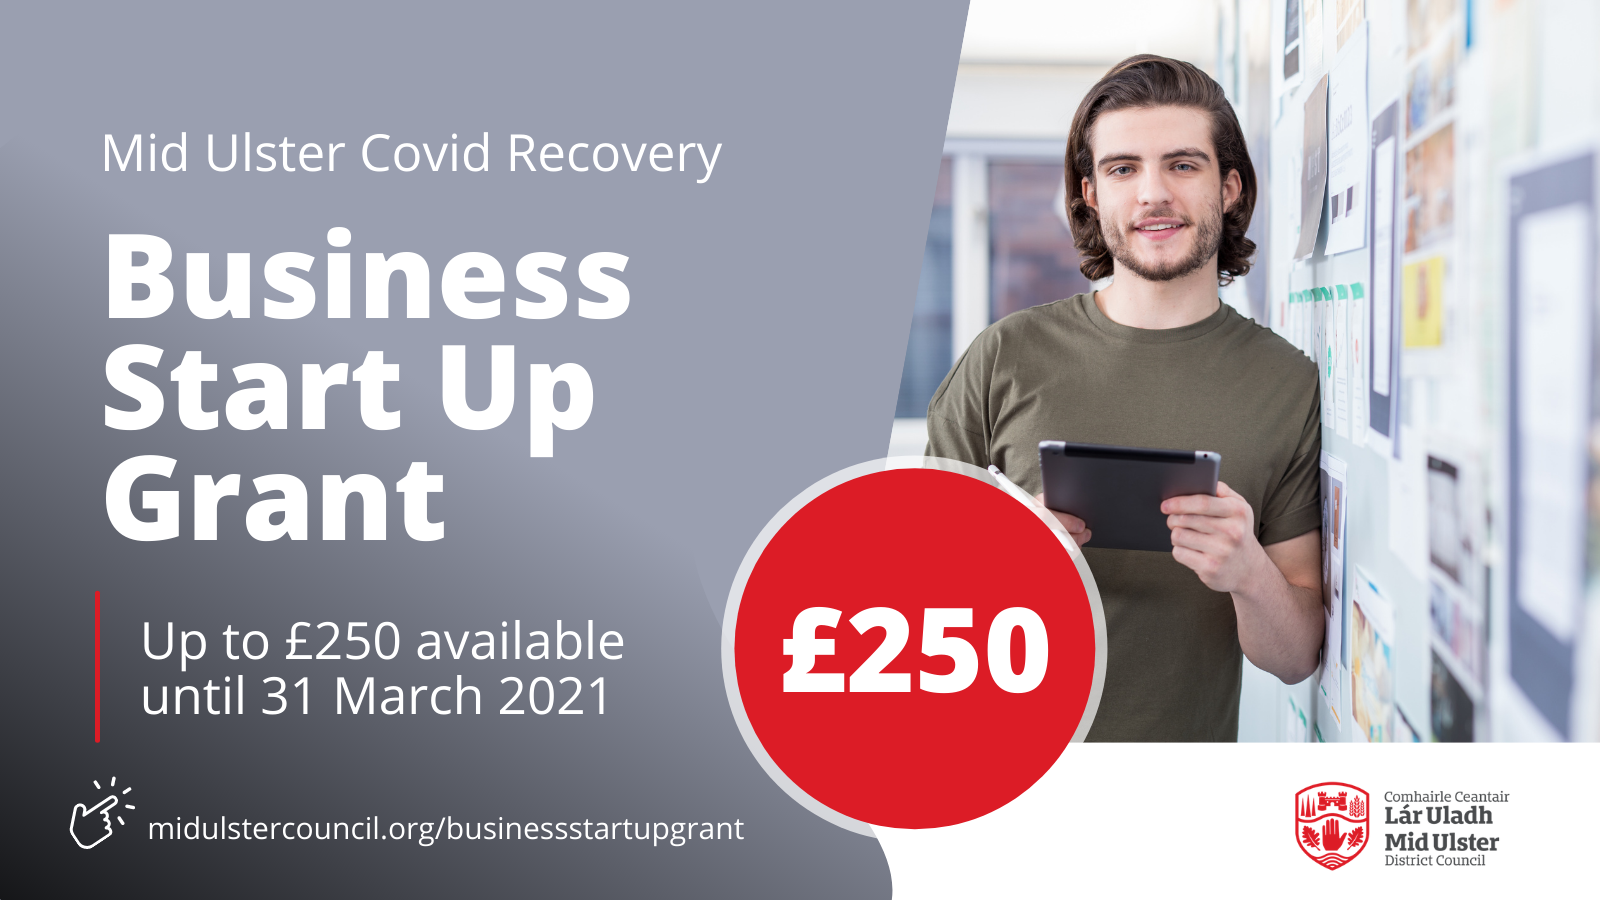 Link to MUDC Business Start Up Grant post